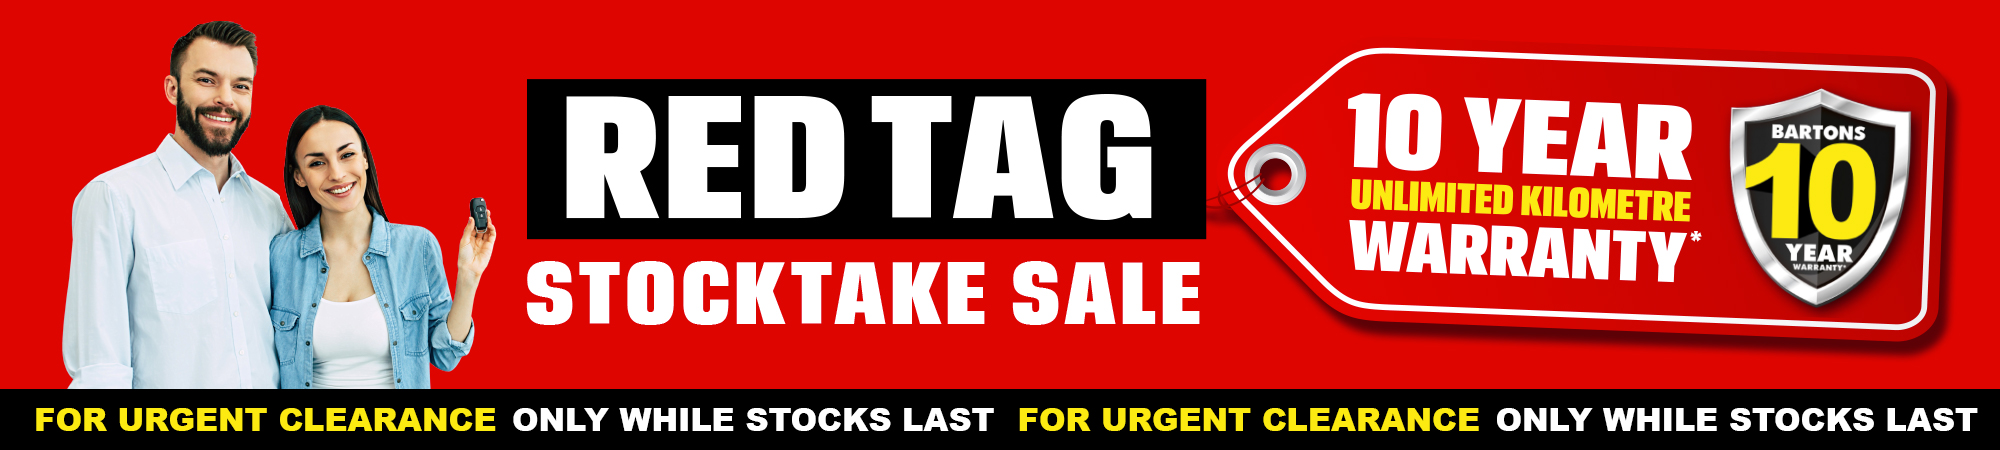 Top Banner - Red Tag Sale